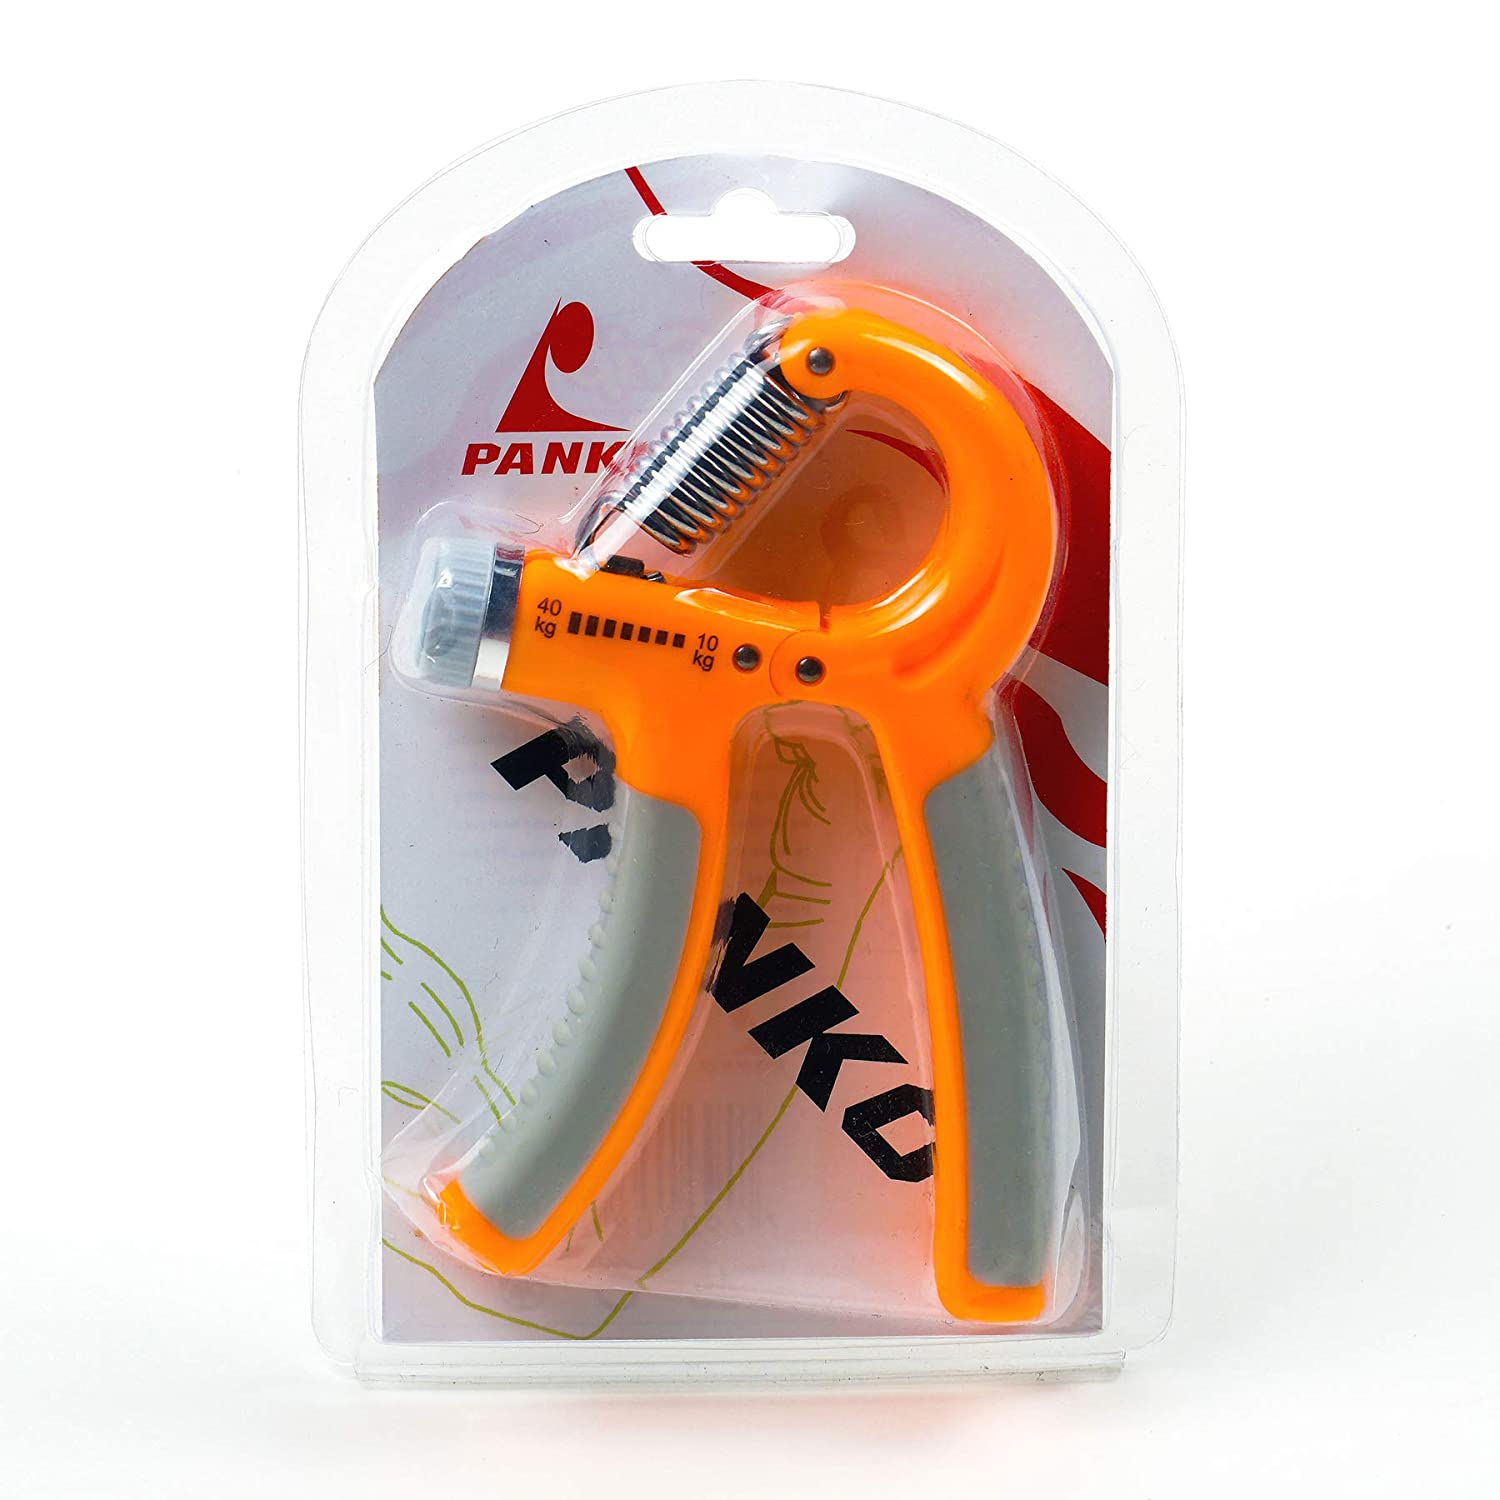 Power Grip (Orange) - 10 Kg To 40 Kg - Adjustable